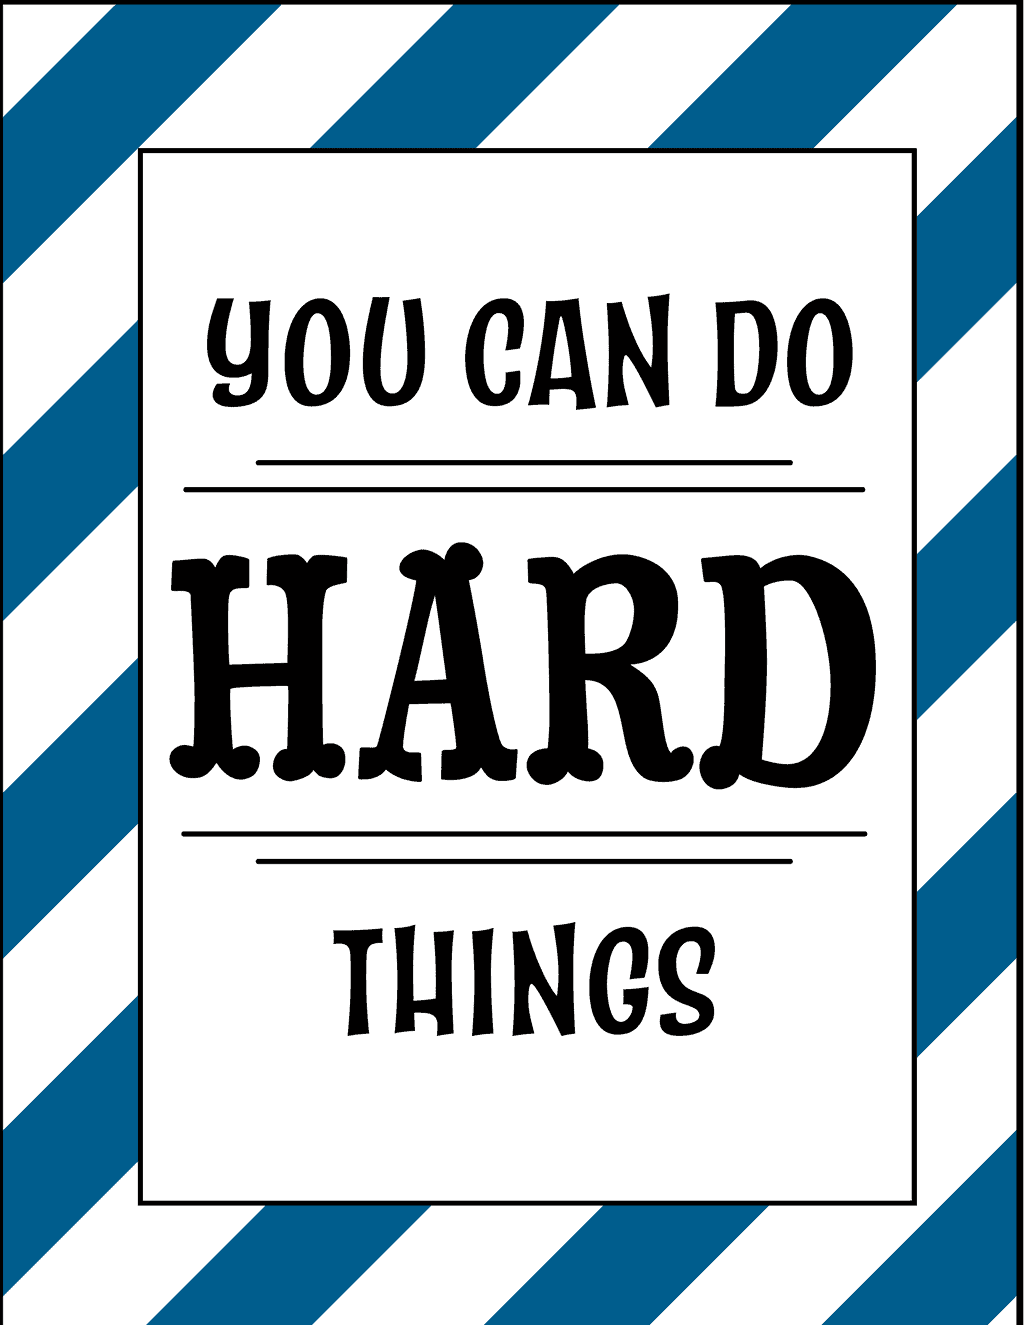 hard-things-back-to-school-quotes